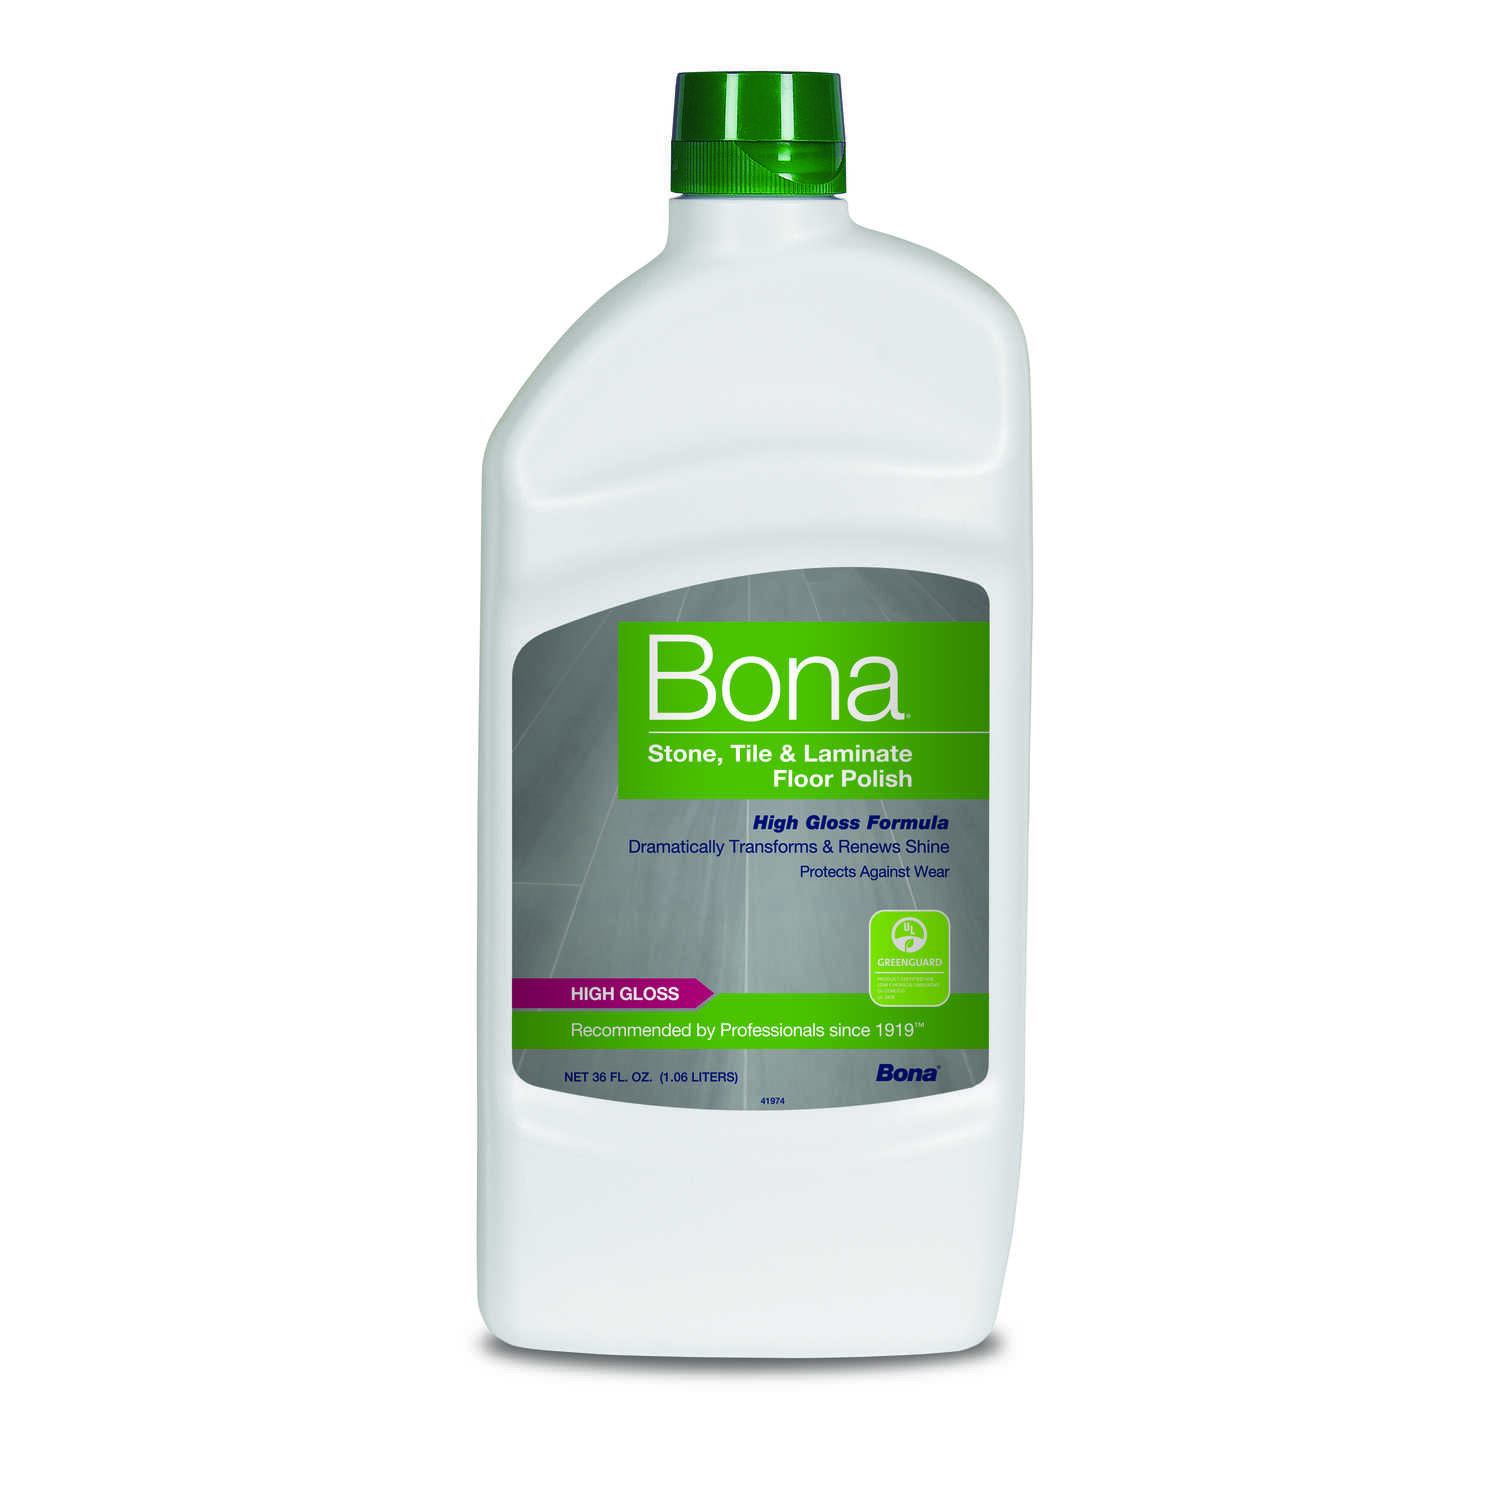 Bona  High Gloss  Floor Polish  Liquid  36 oz.